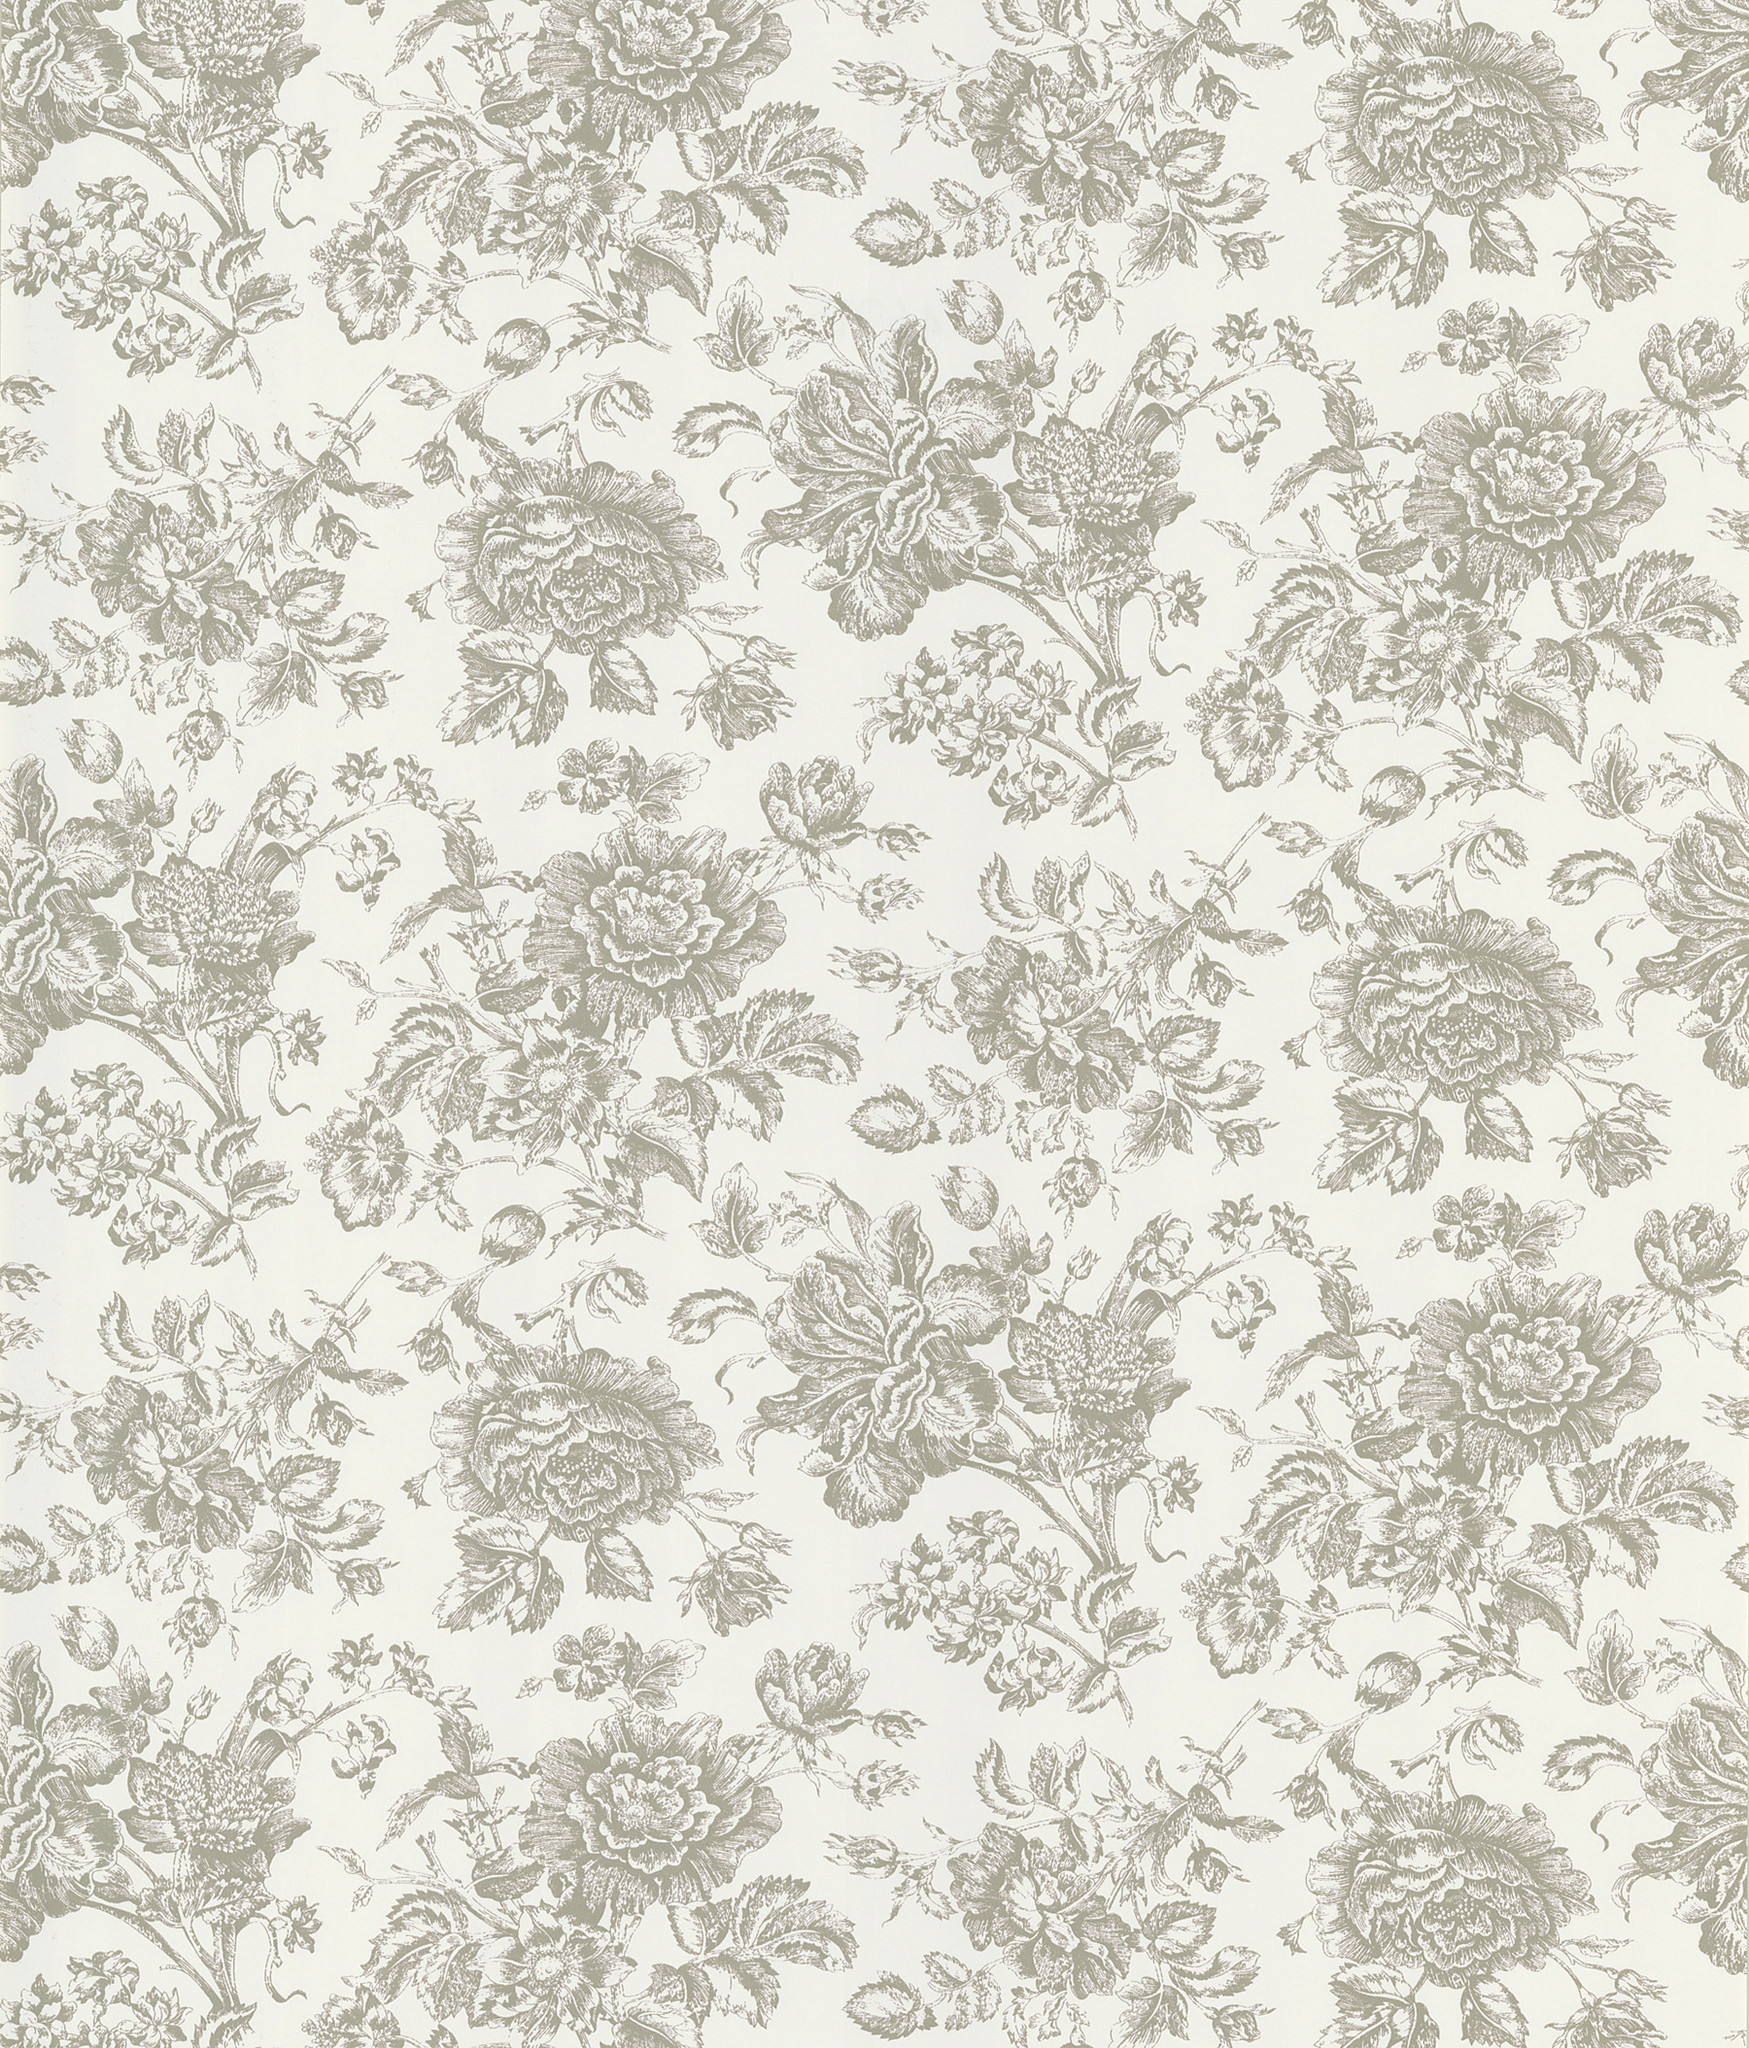 Pavot Floral Toile Wallpaper in White by Brewster Home Fashions 1749x2048